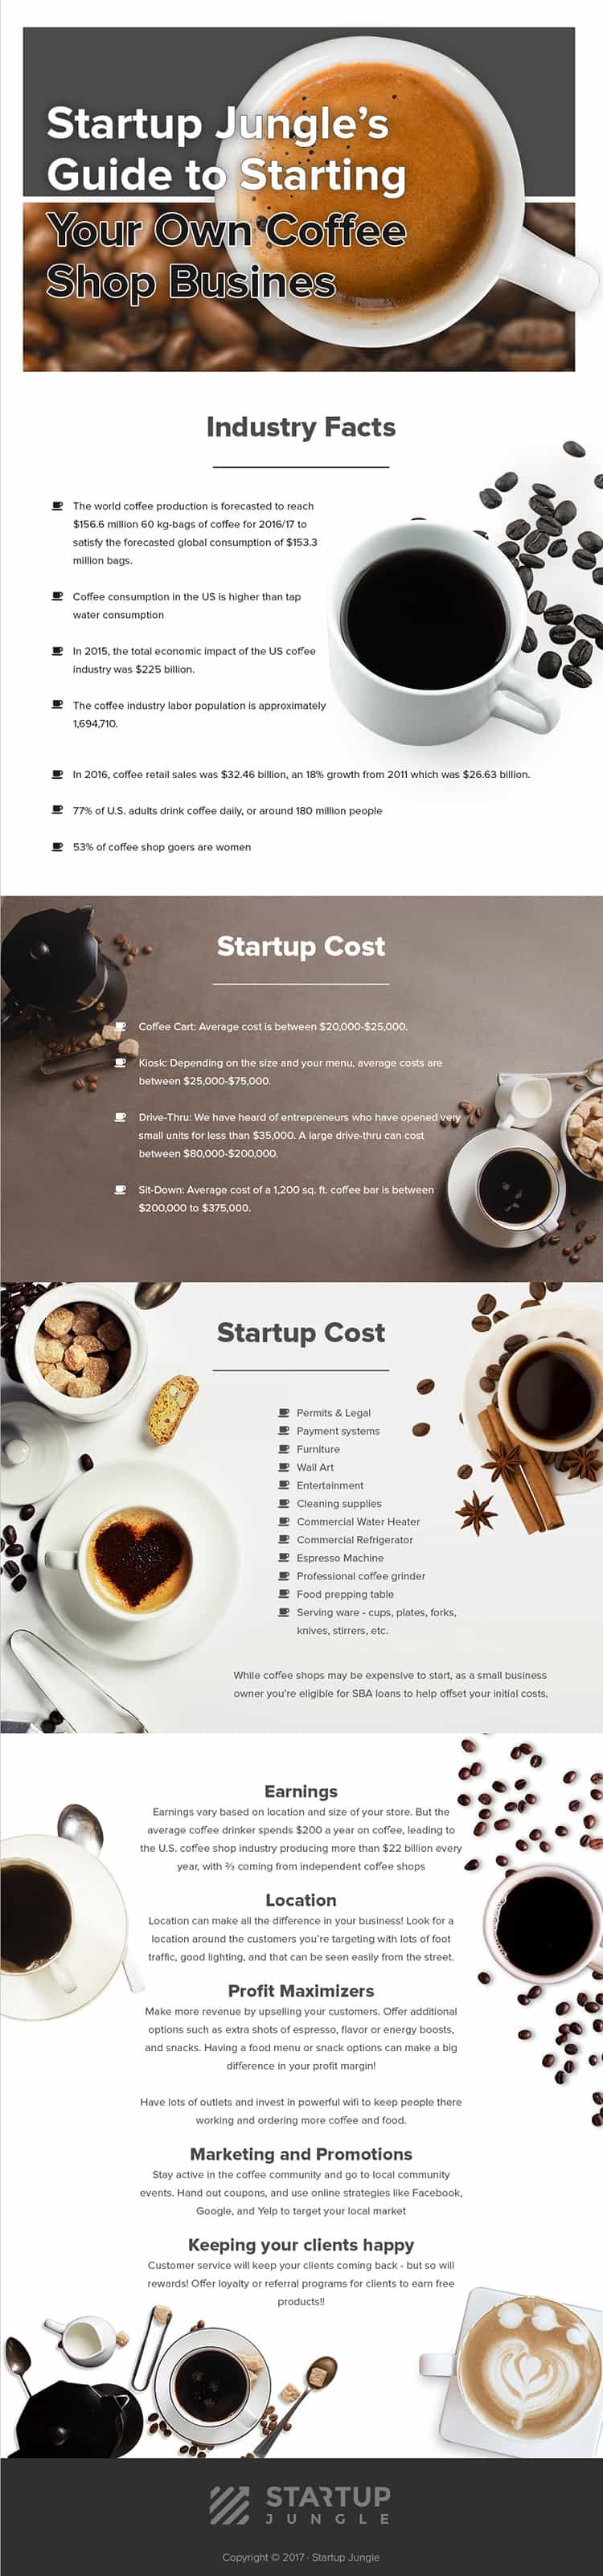 How To Open Your Own Coffee Shop Startup Jungle Coffee Shop Business Opening A Coffee Shop Coffee Shop